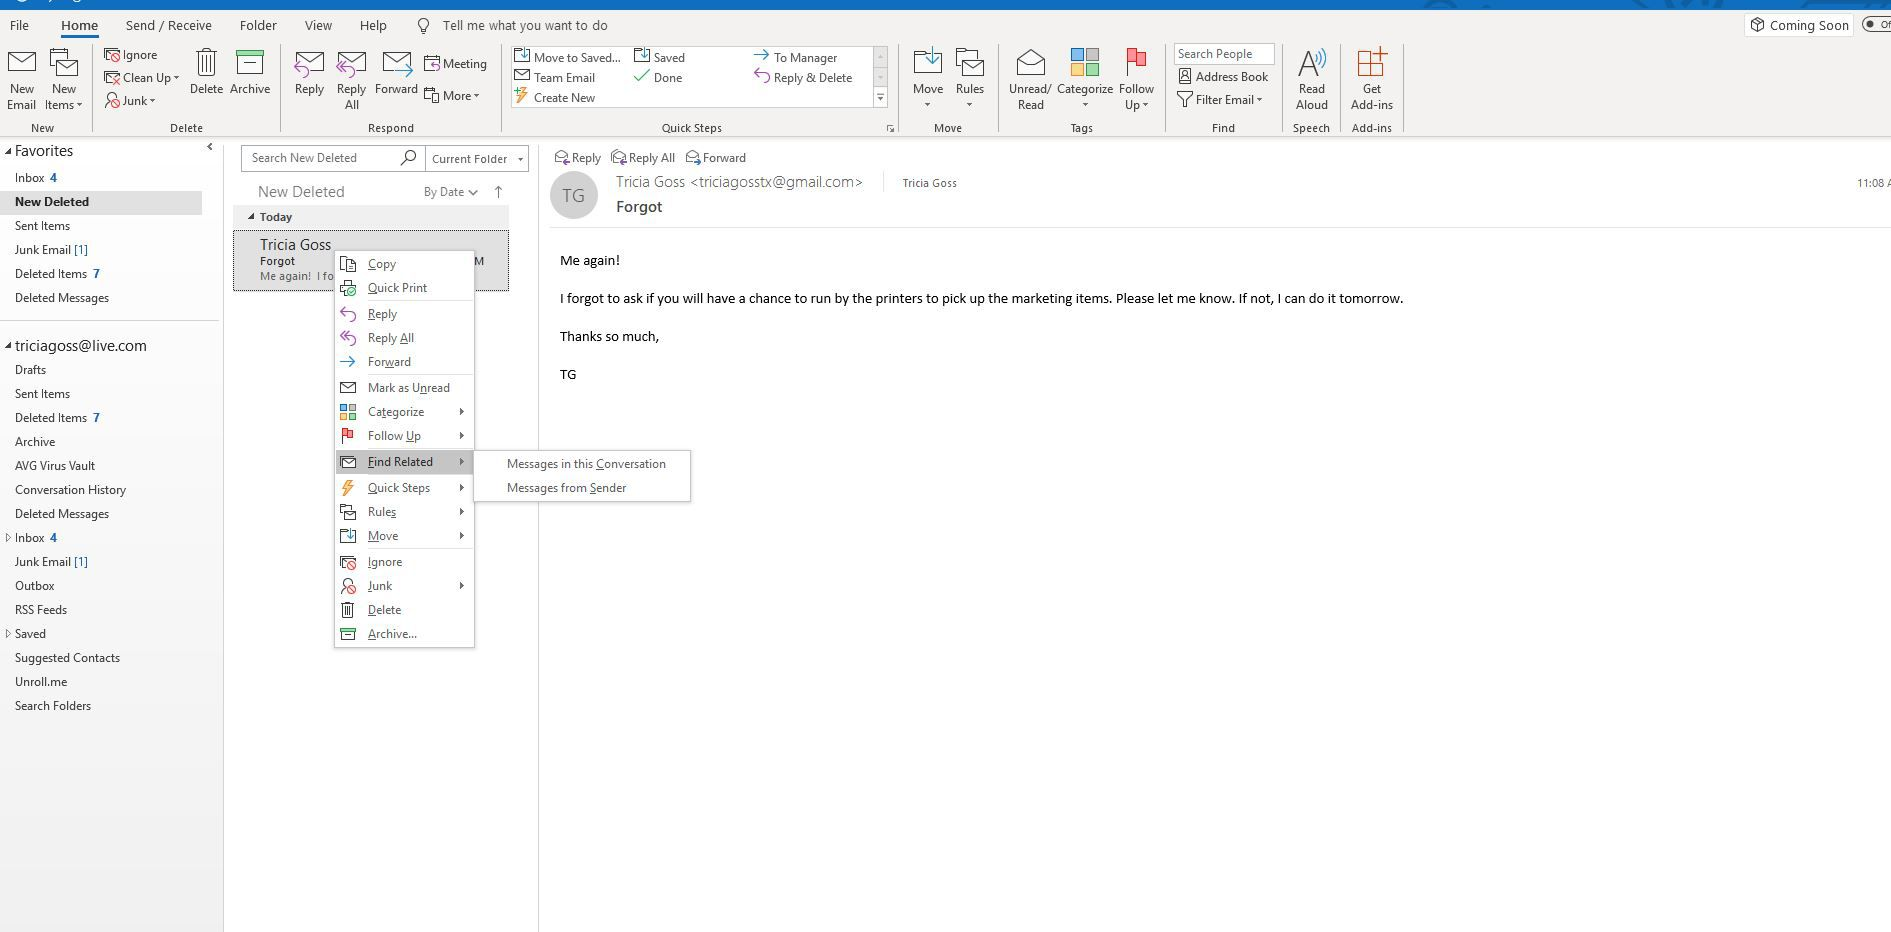 How to Find Related Messages With Outlook